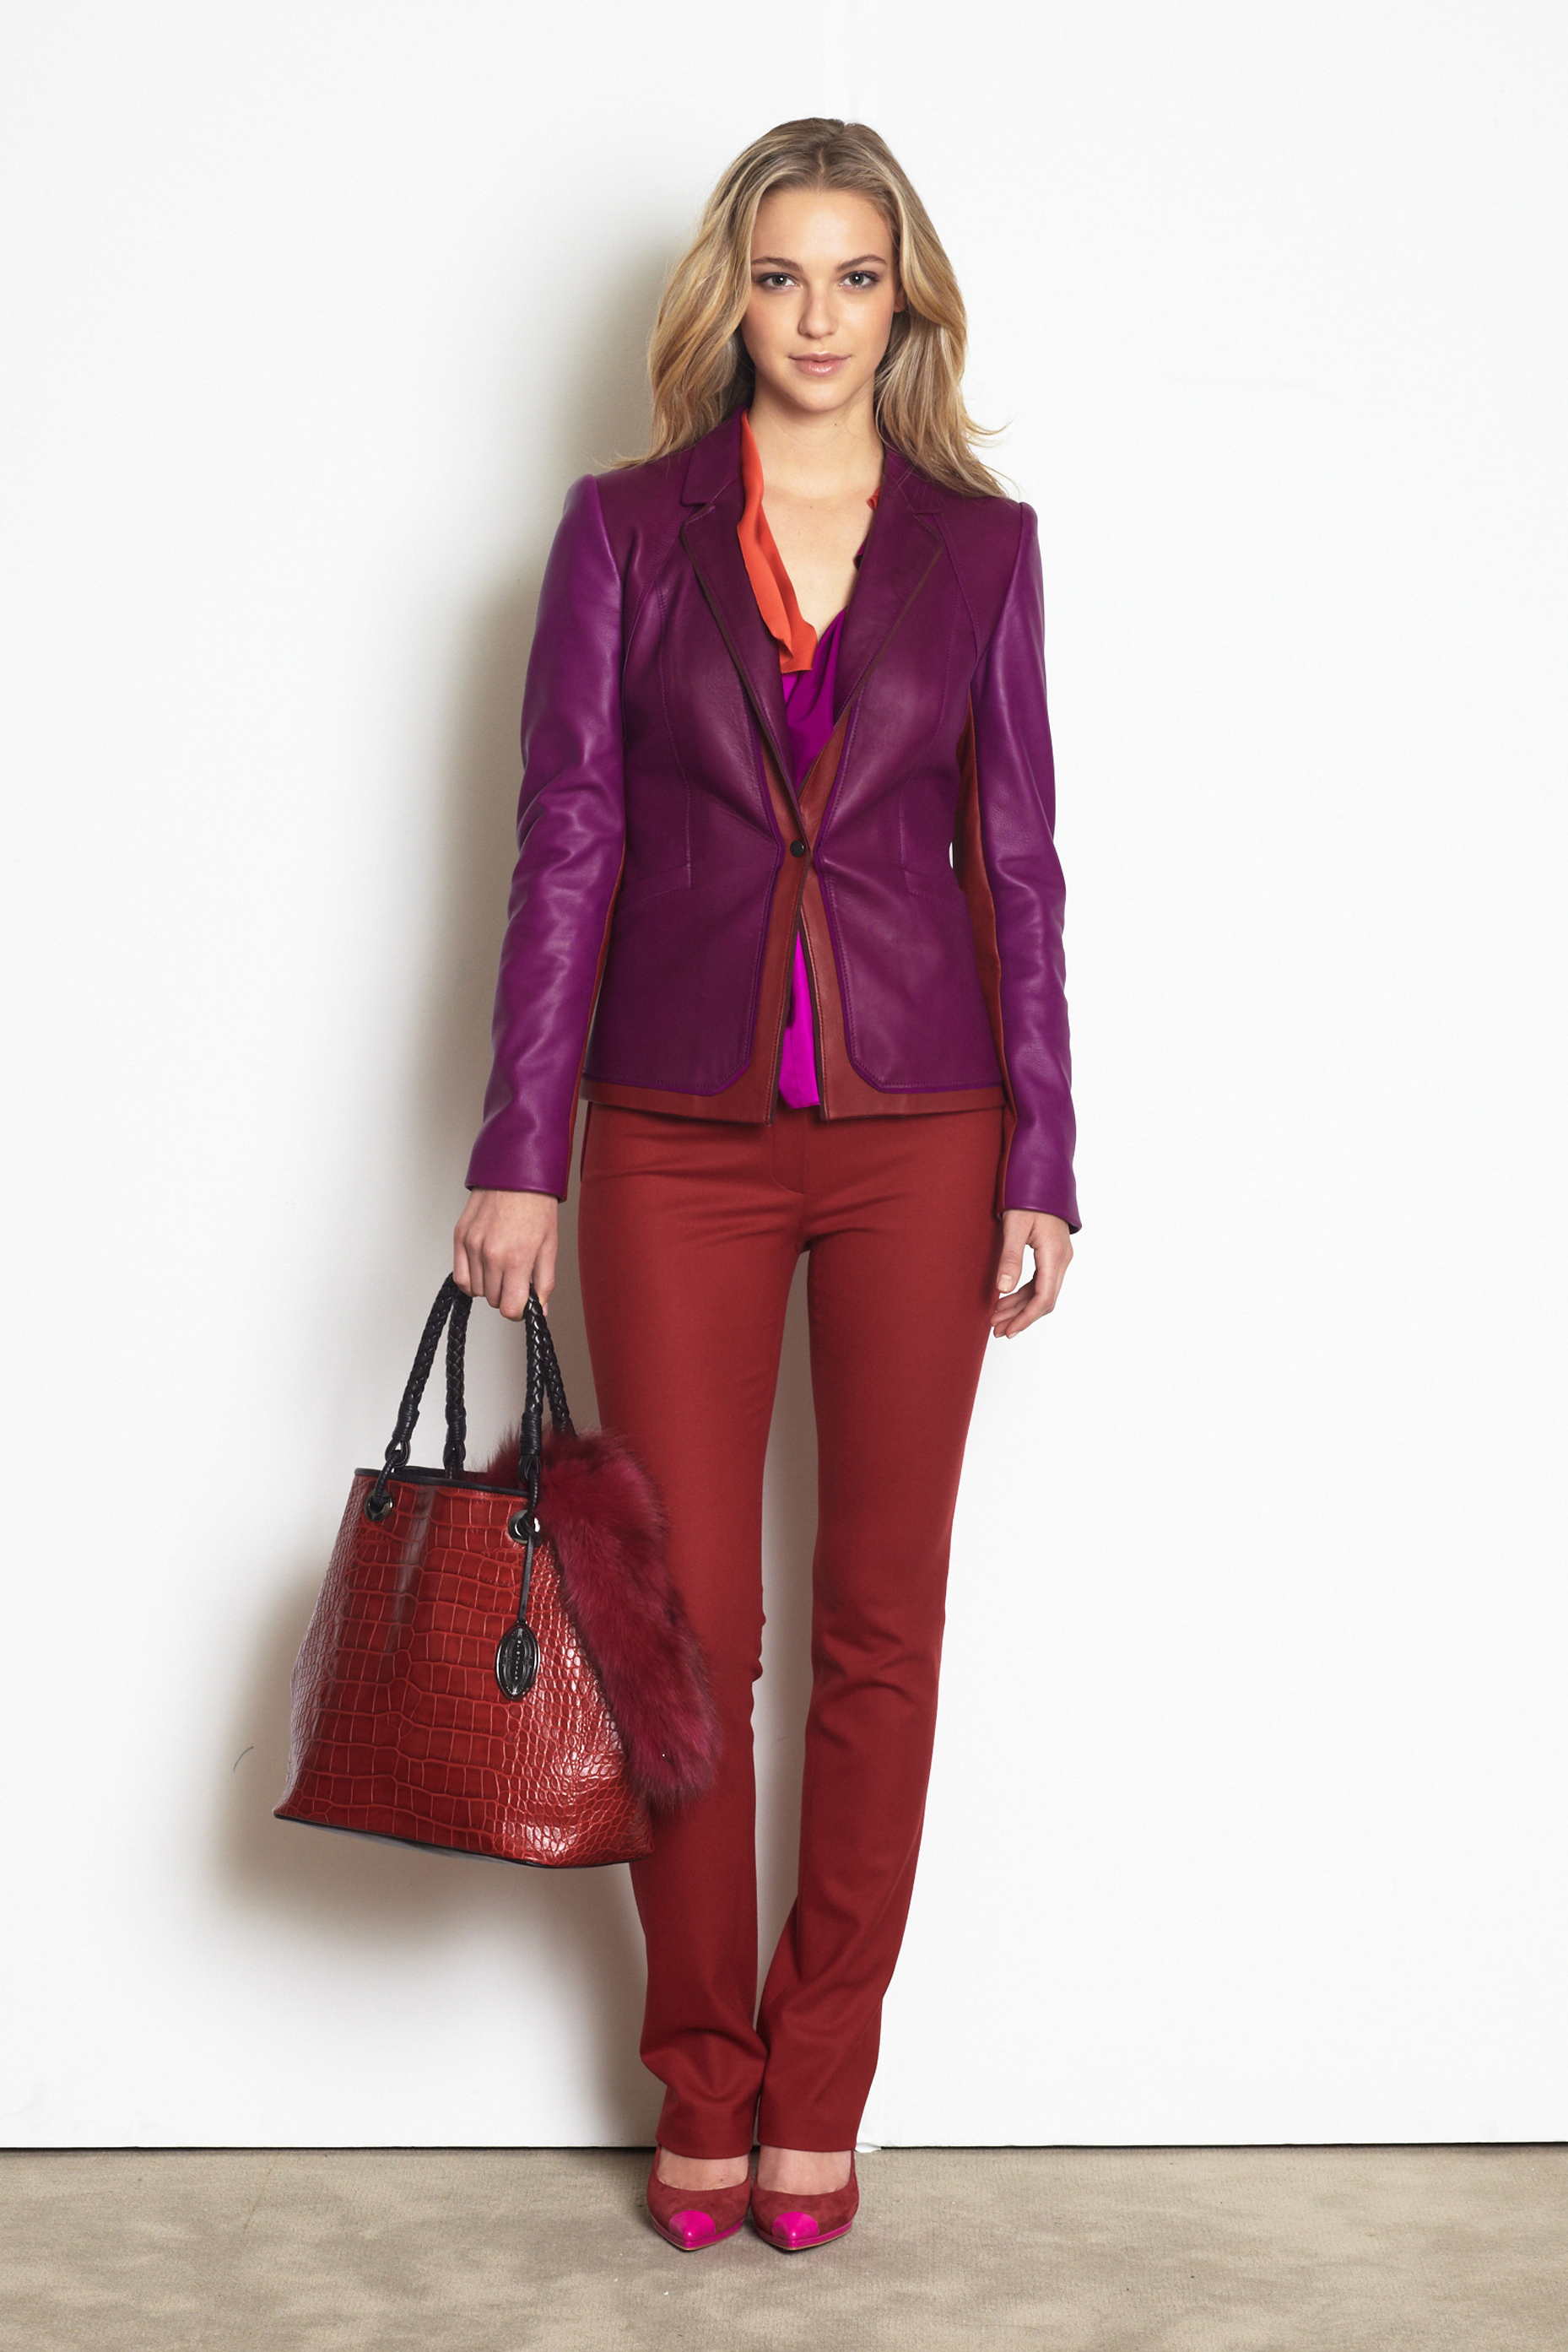 Elie Tahari's leather jacket with bordeaux details, bordeaux wool pants and croc-embossed leather tote